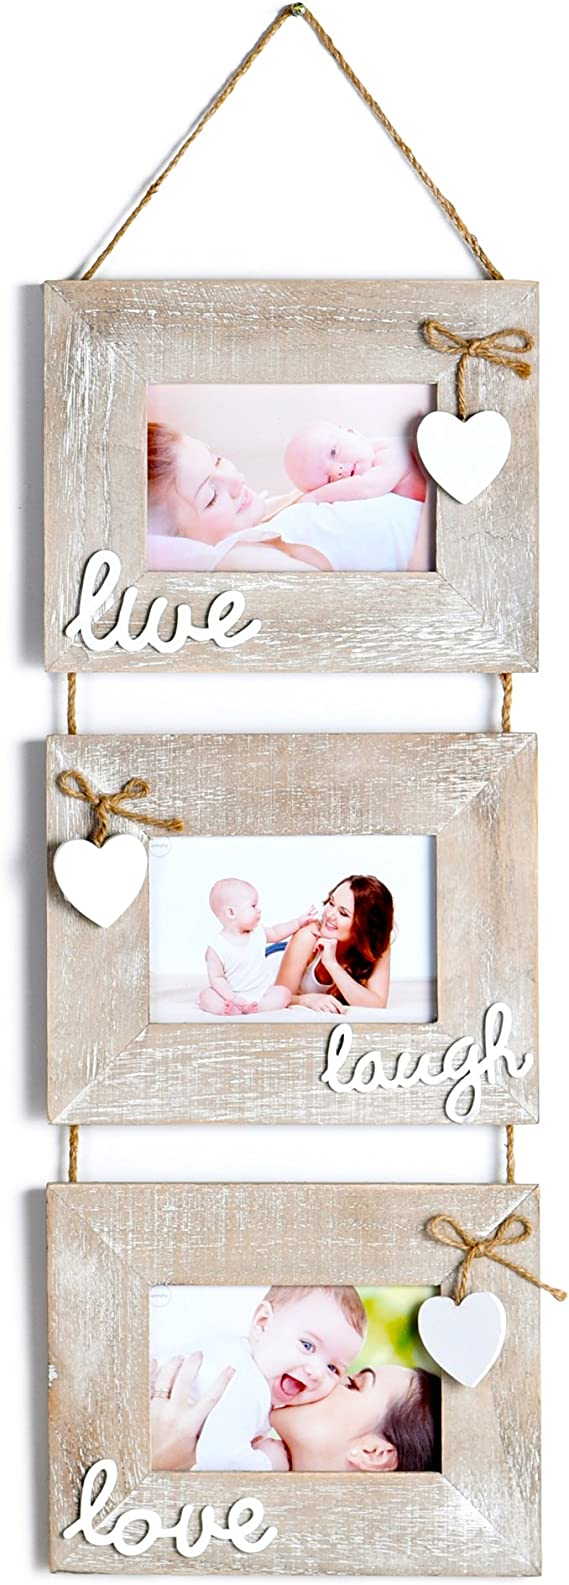 Yaetm Live Laugh Love Collage Hanging Picture Frame 4x6 Solid Wood 3 Photo Frames Set Wall Mount Verticval Display Rustic Grey Amazon Com